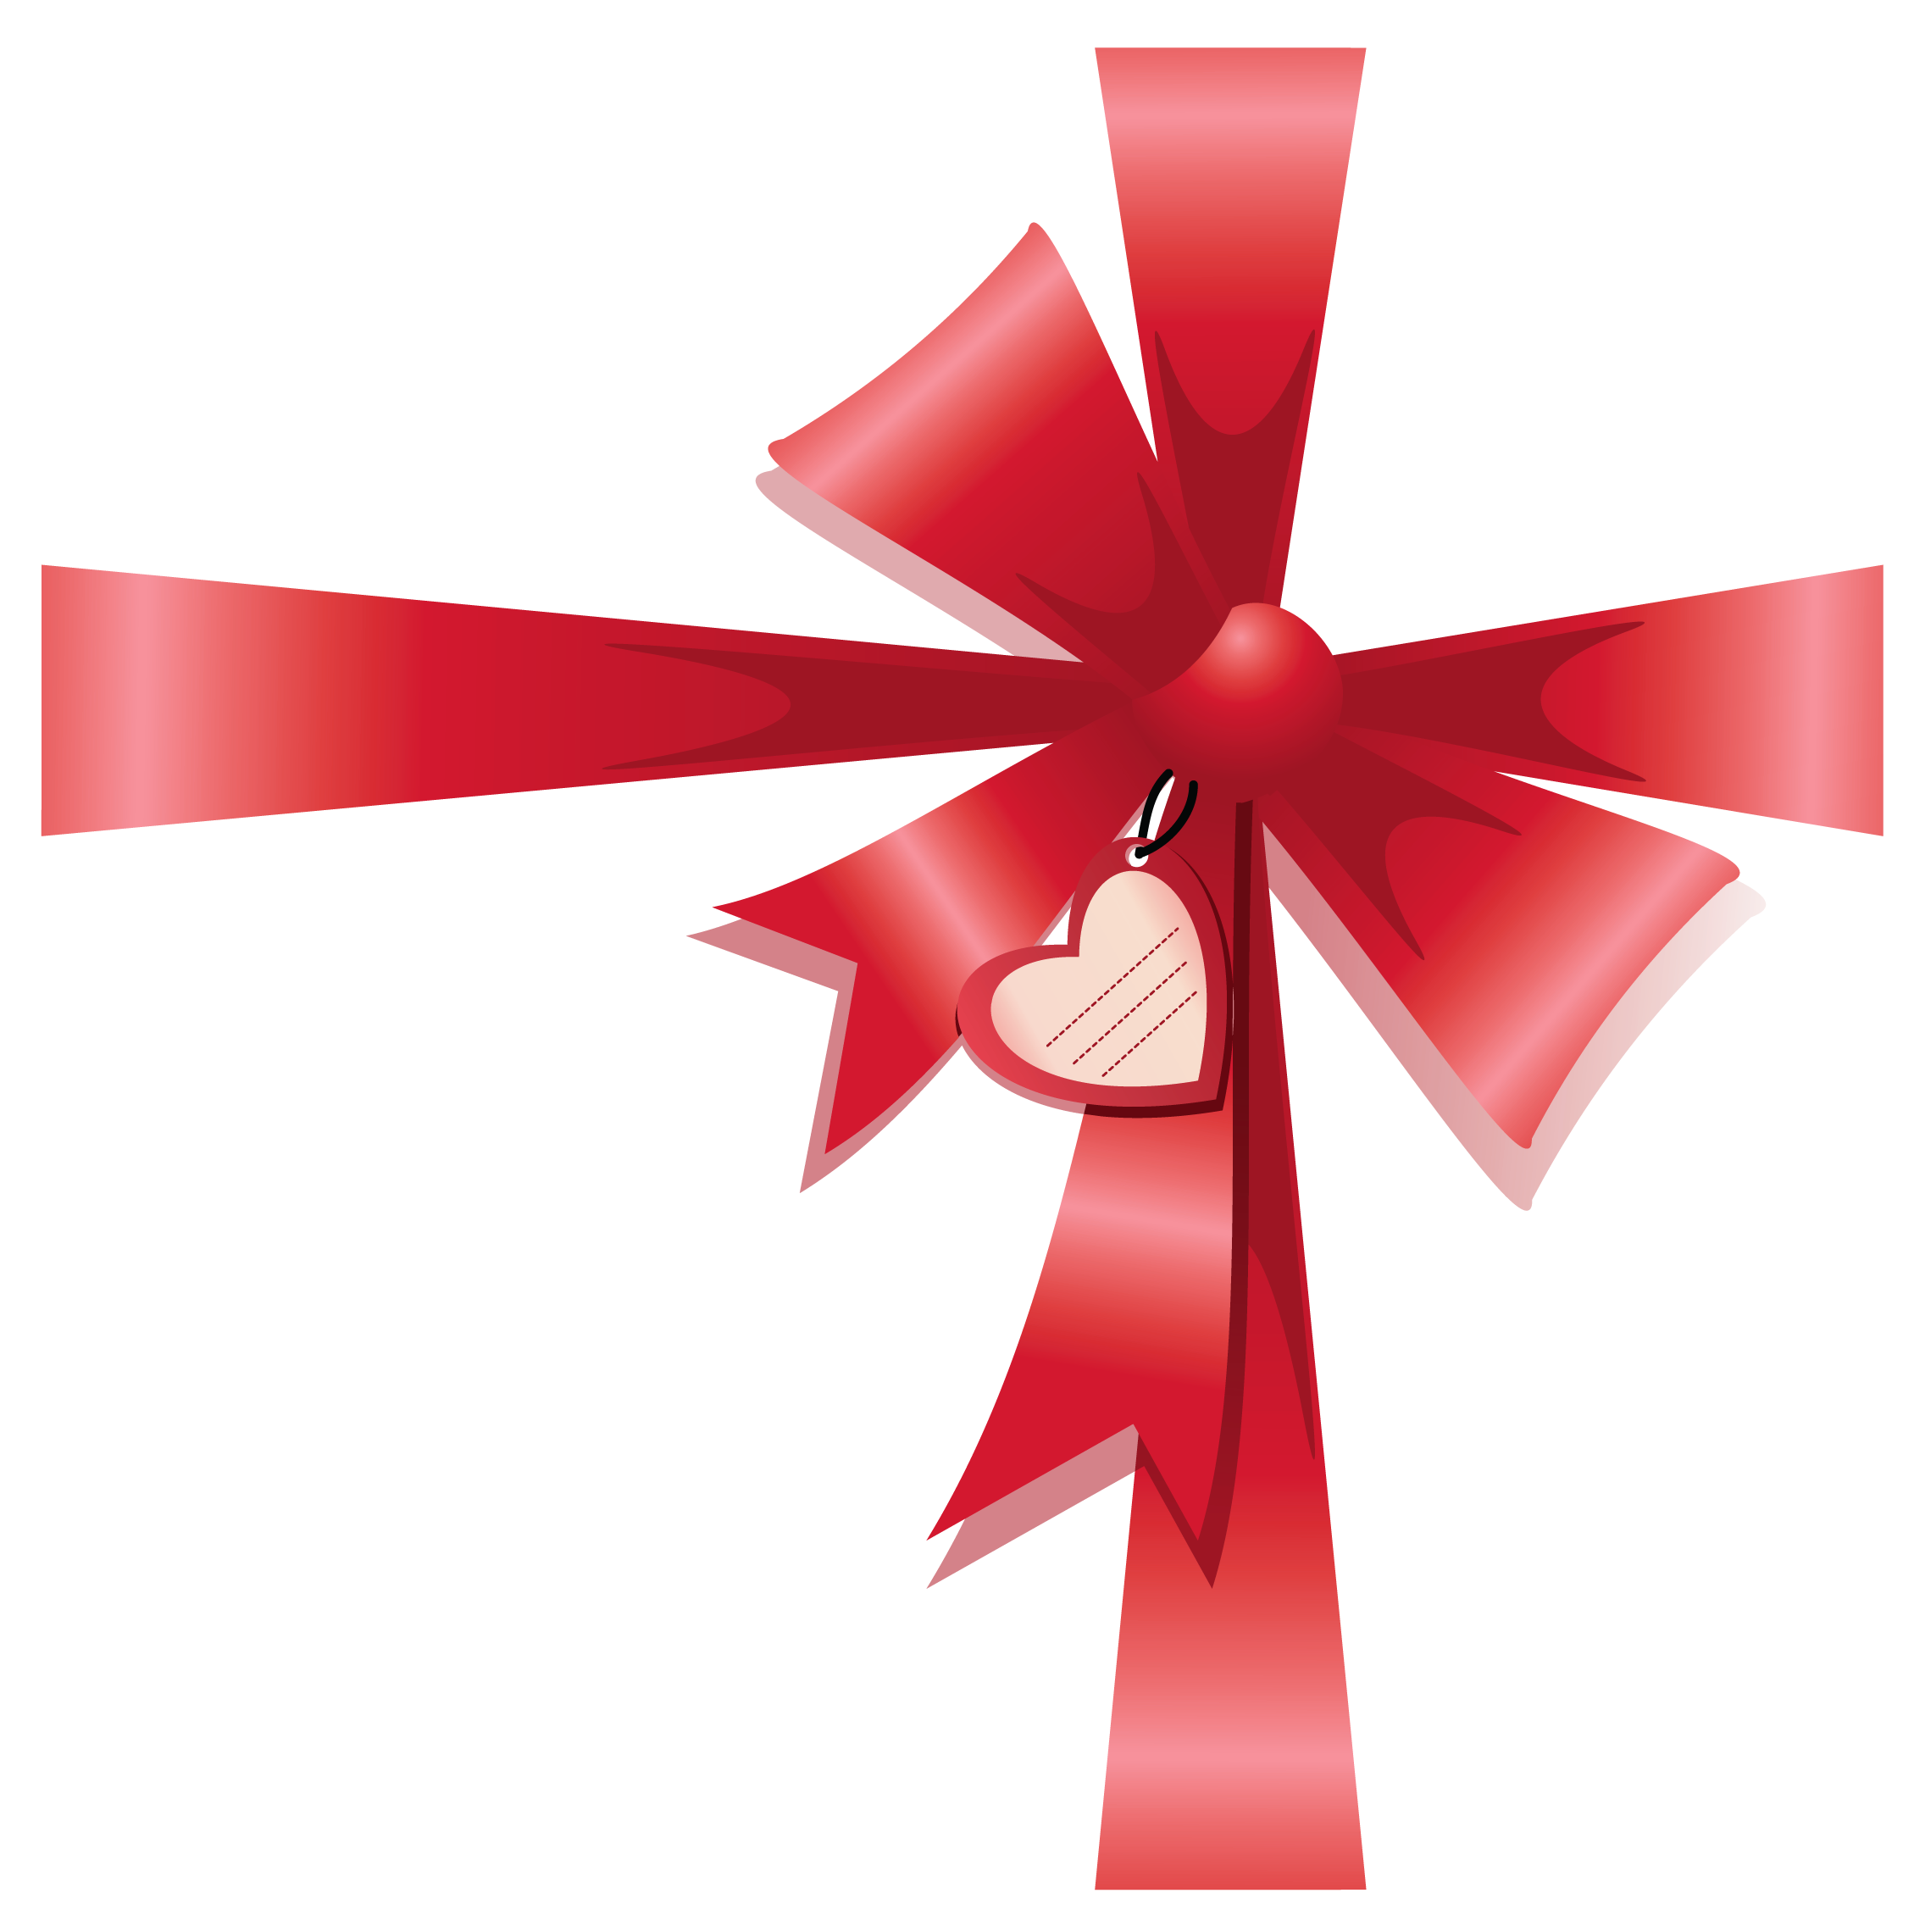 Clipart bow double bow. Valentine decorative with heart